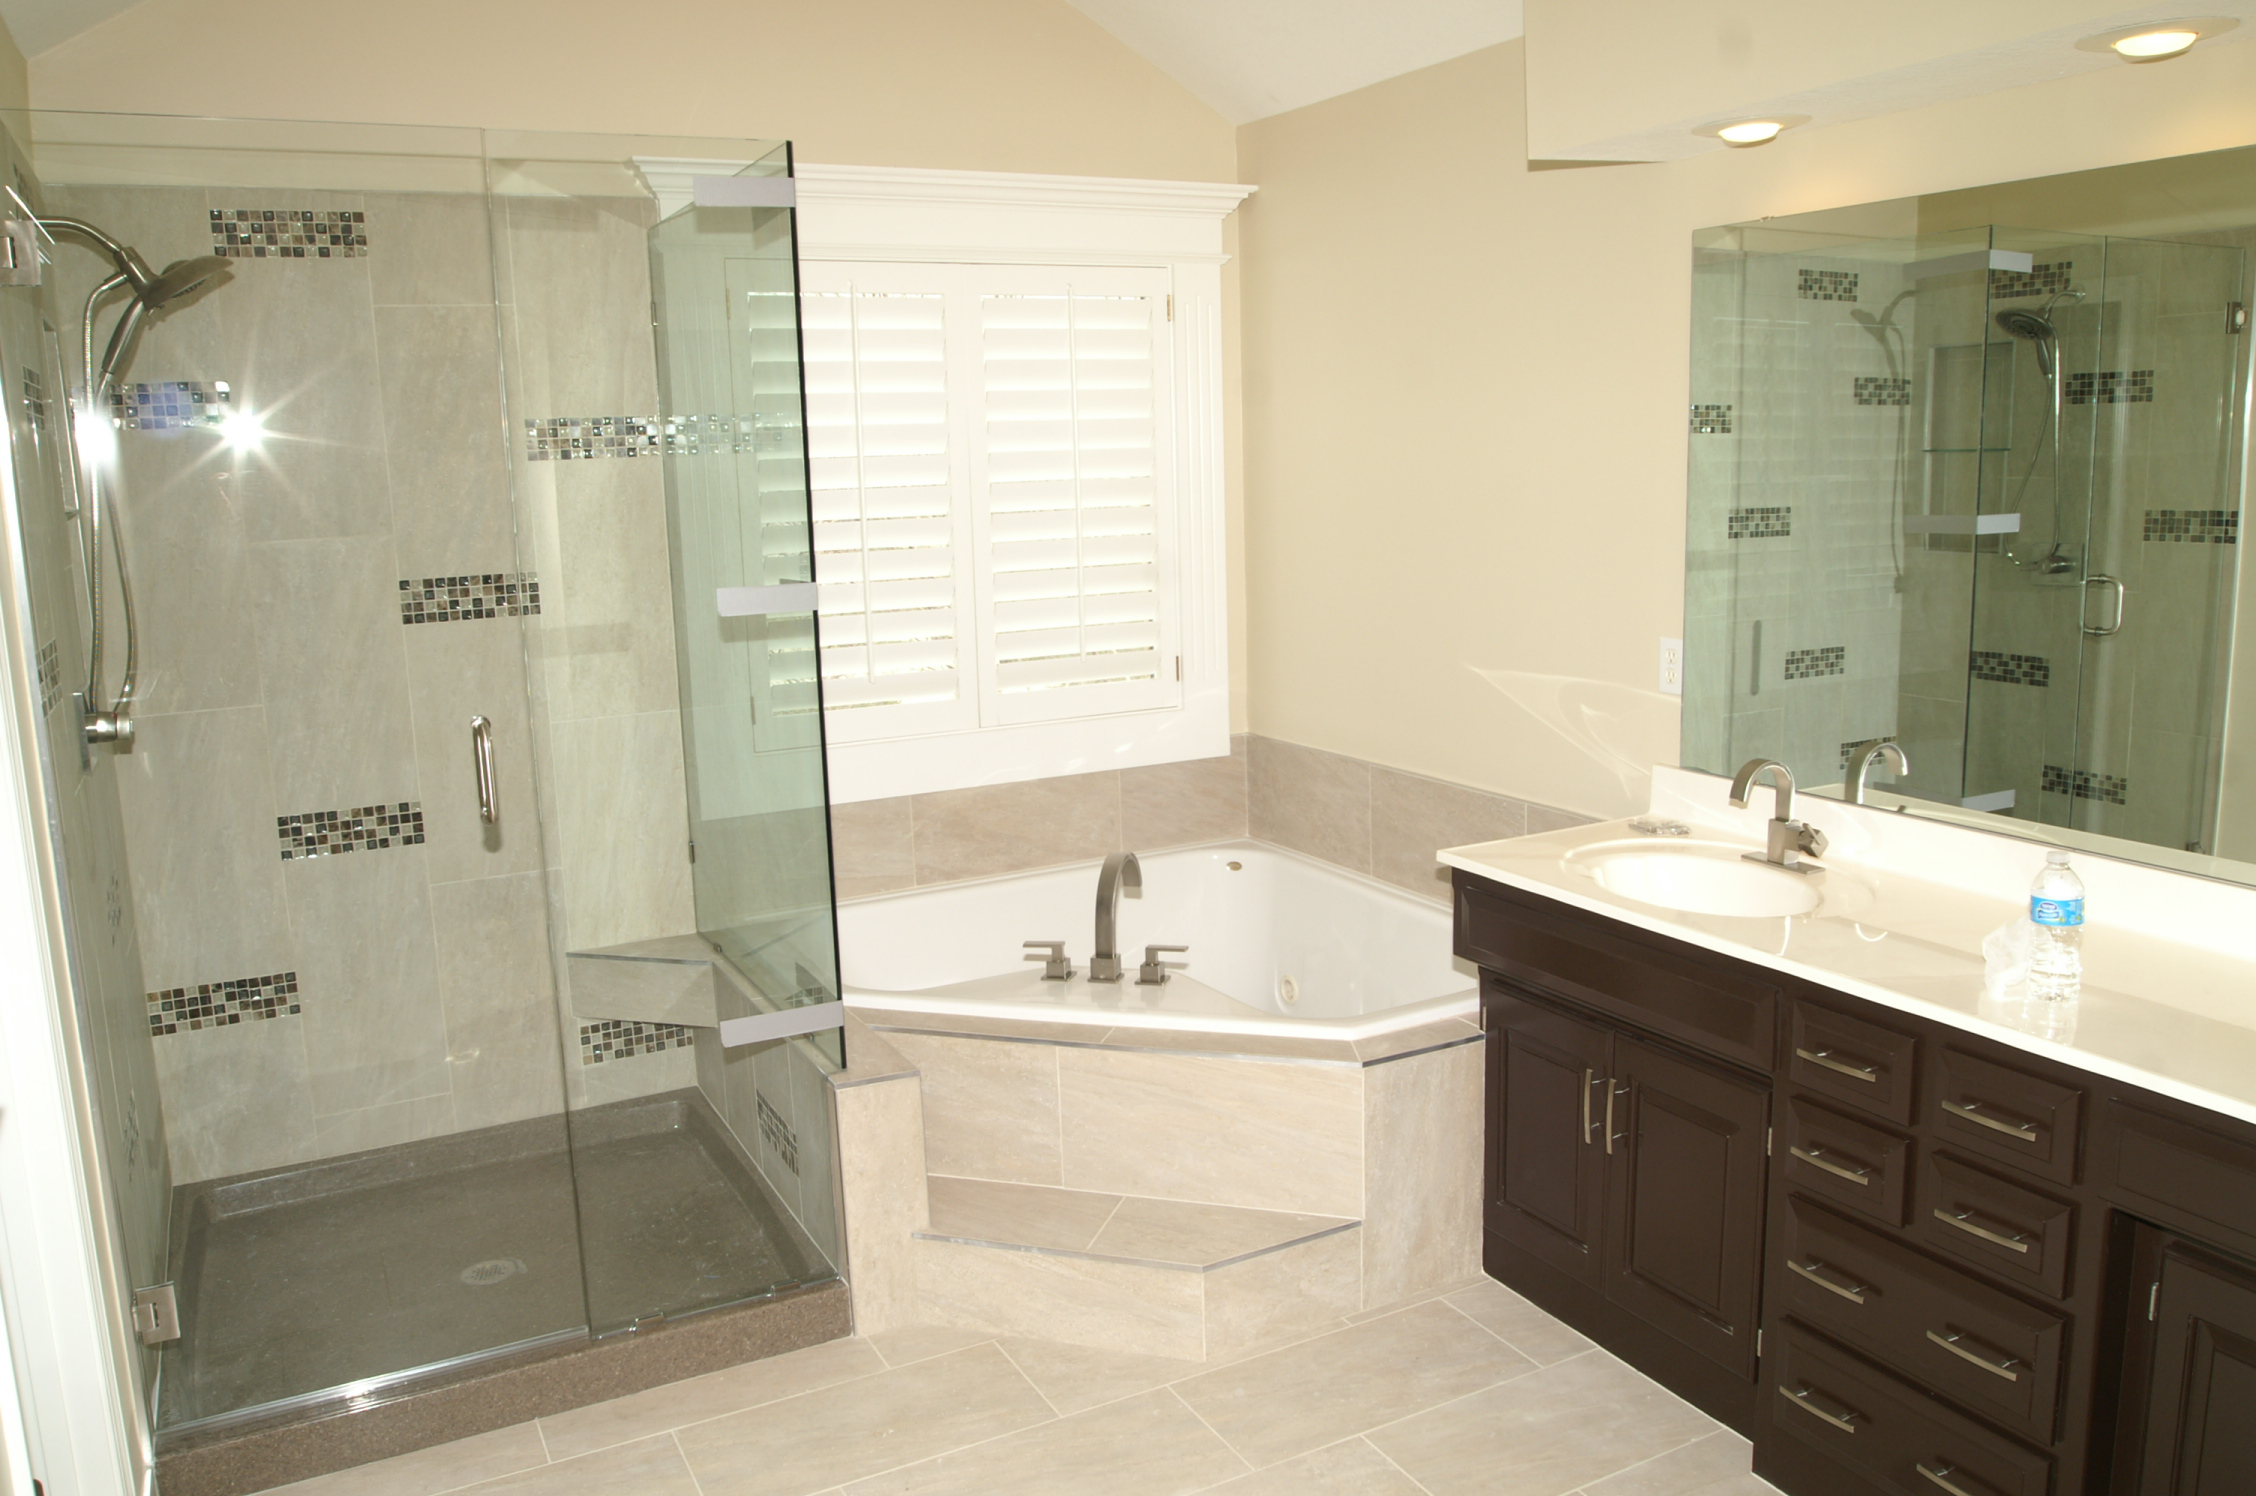 25 best bathroom remodeling ideas and inspiration - Corner tub bathrooms design ...